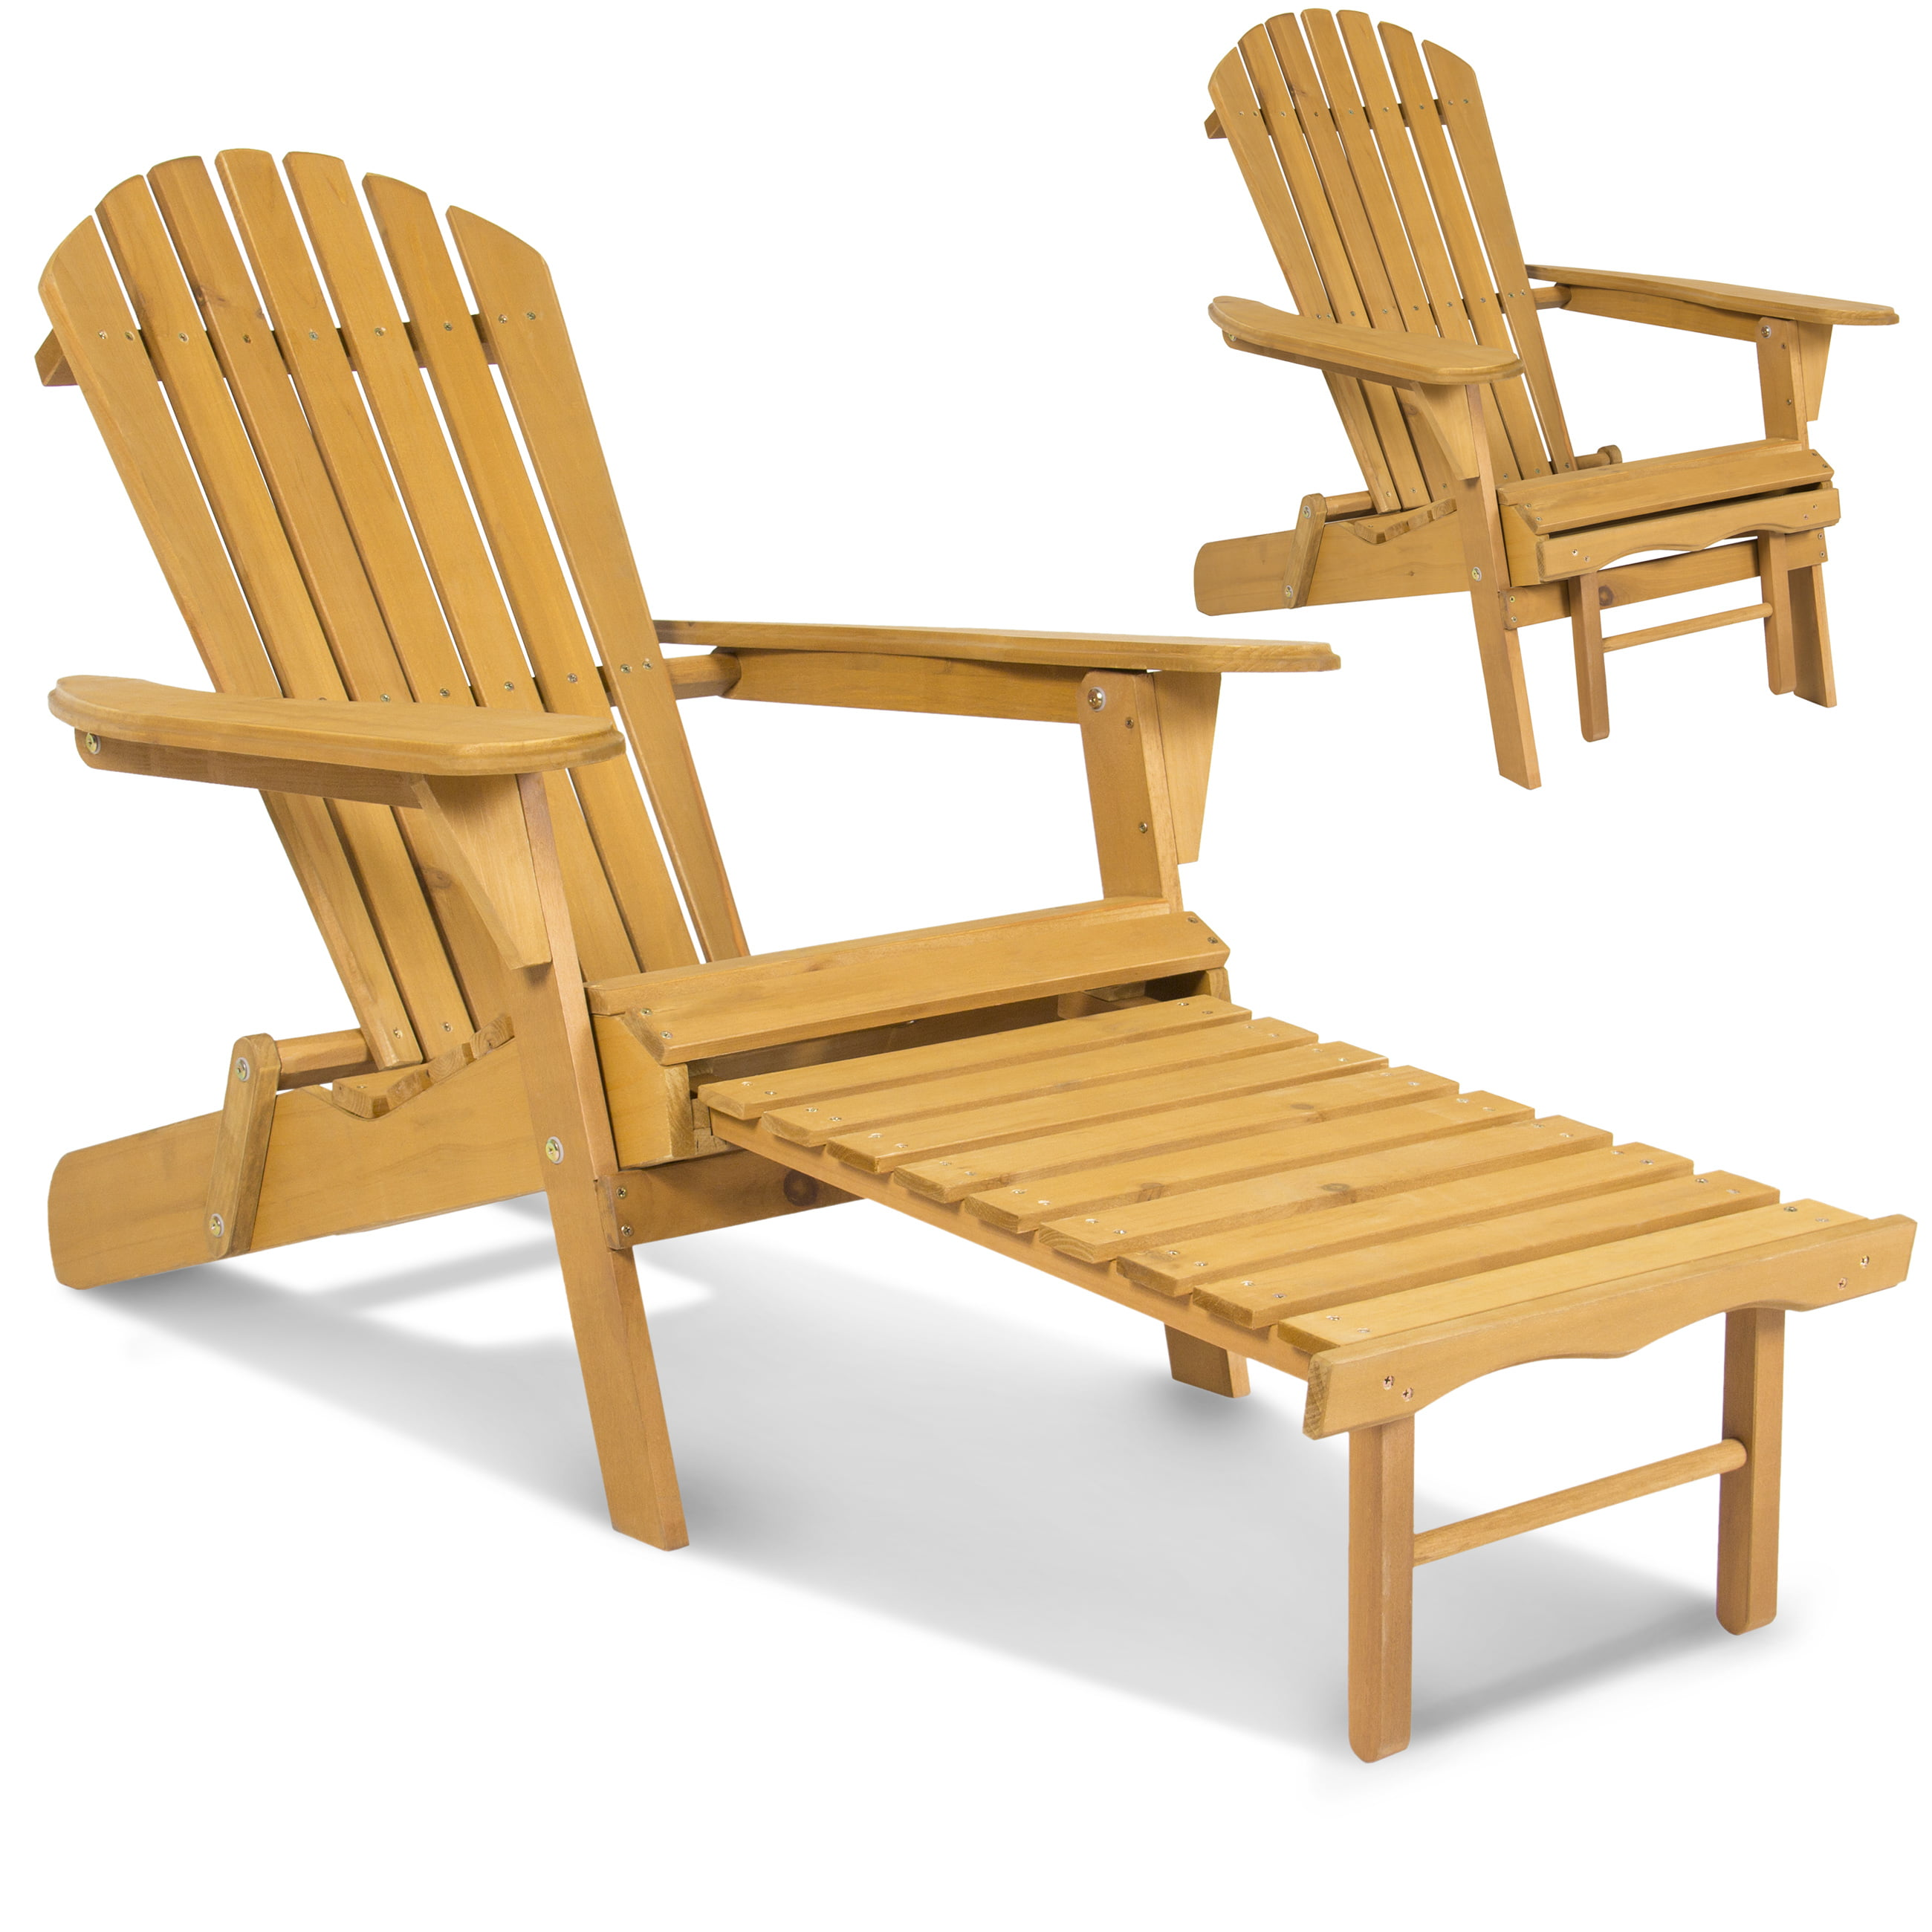 Best Choice Products Outdoor Wood Adirondack Chair Foldable w